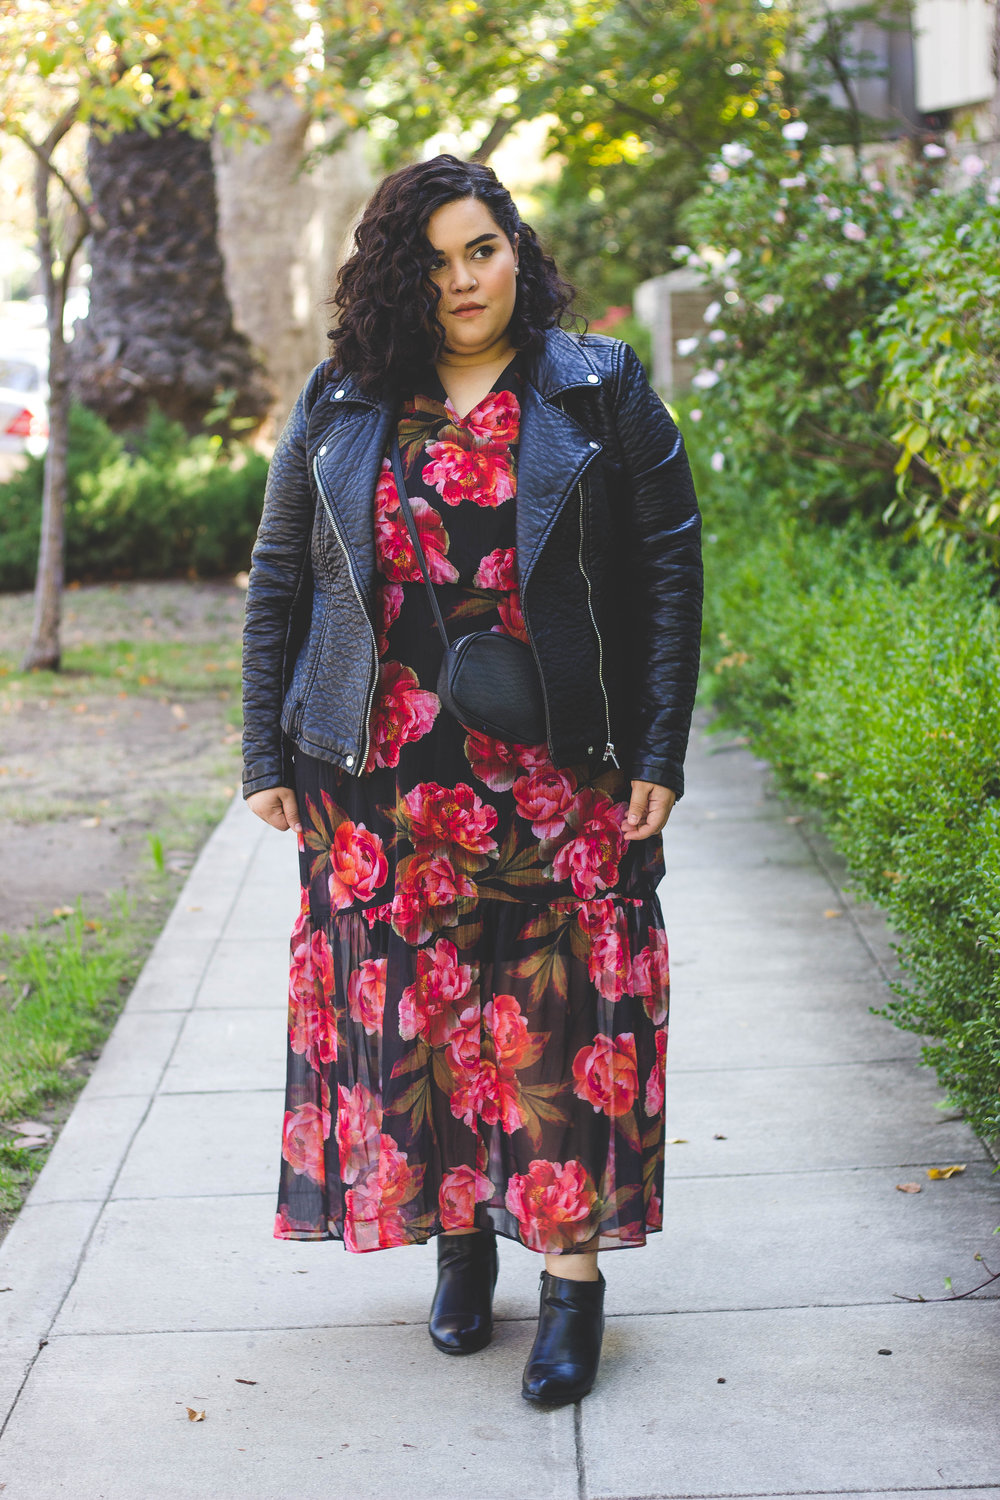 FloralDressWLeatherJacket (50 of 53).jpg